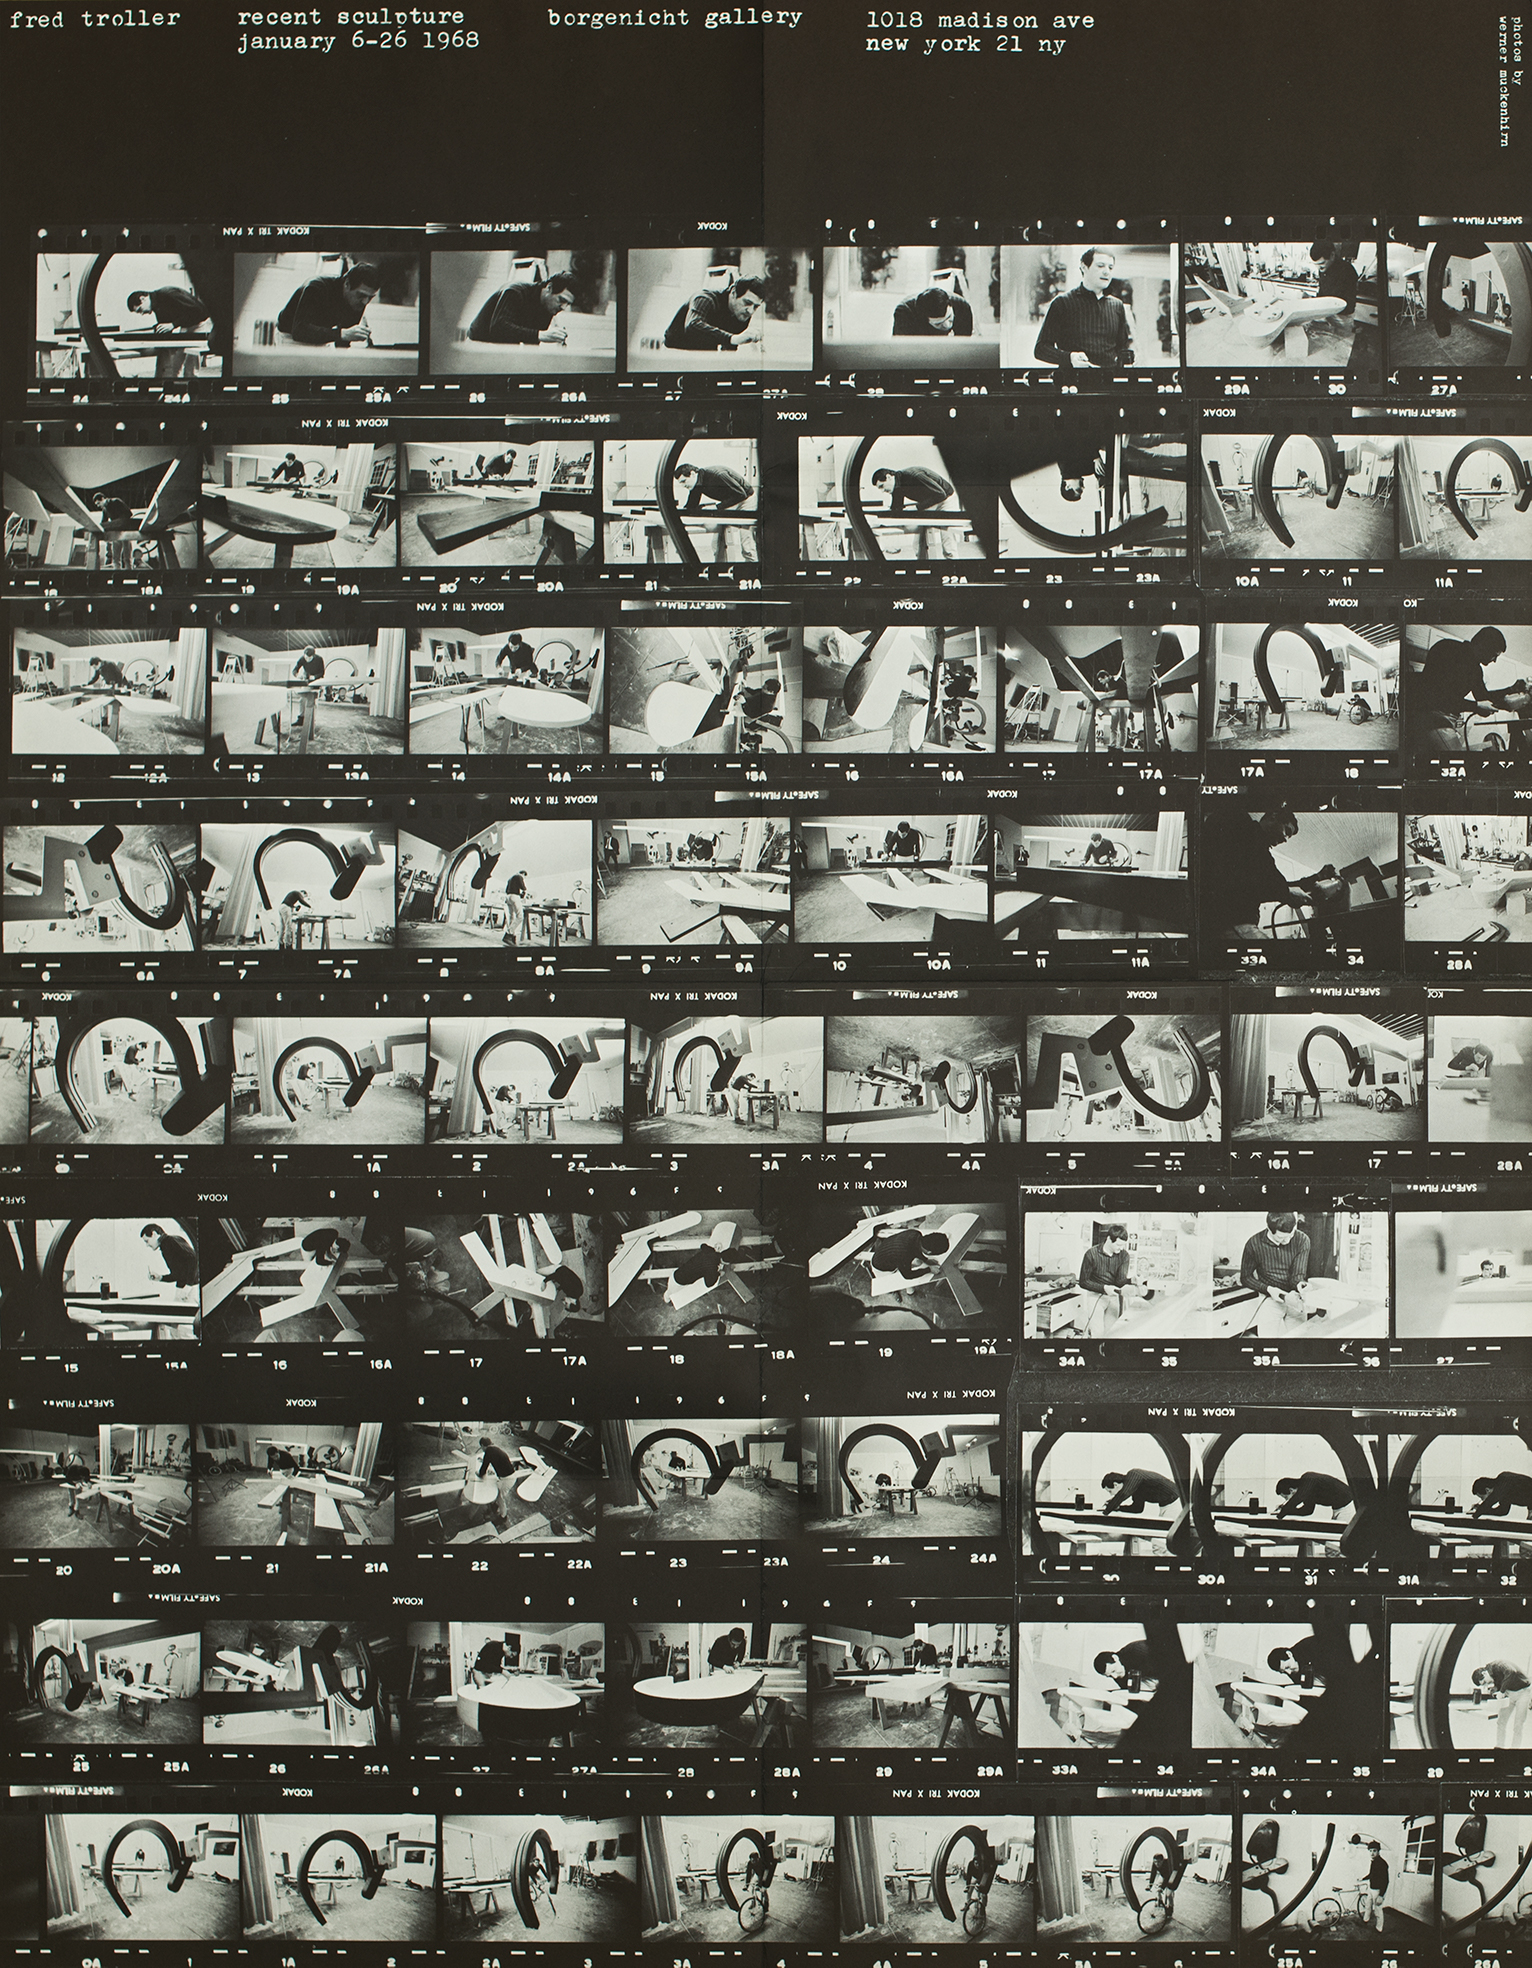 "Poster featuring black and white contact sheet of photographs showing Fred Troller constructing a large sculpture. At the top, text in white typewriter typeface, ""fred troller, recent sculpture, january 6-26 1968, borgenicht gallery, 1018 madison ave new york 21 ny."""